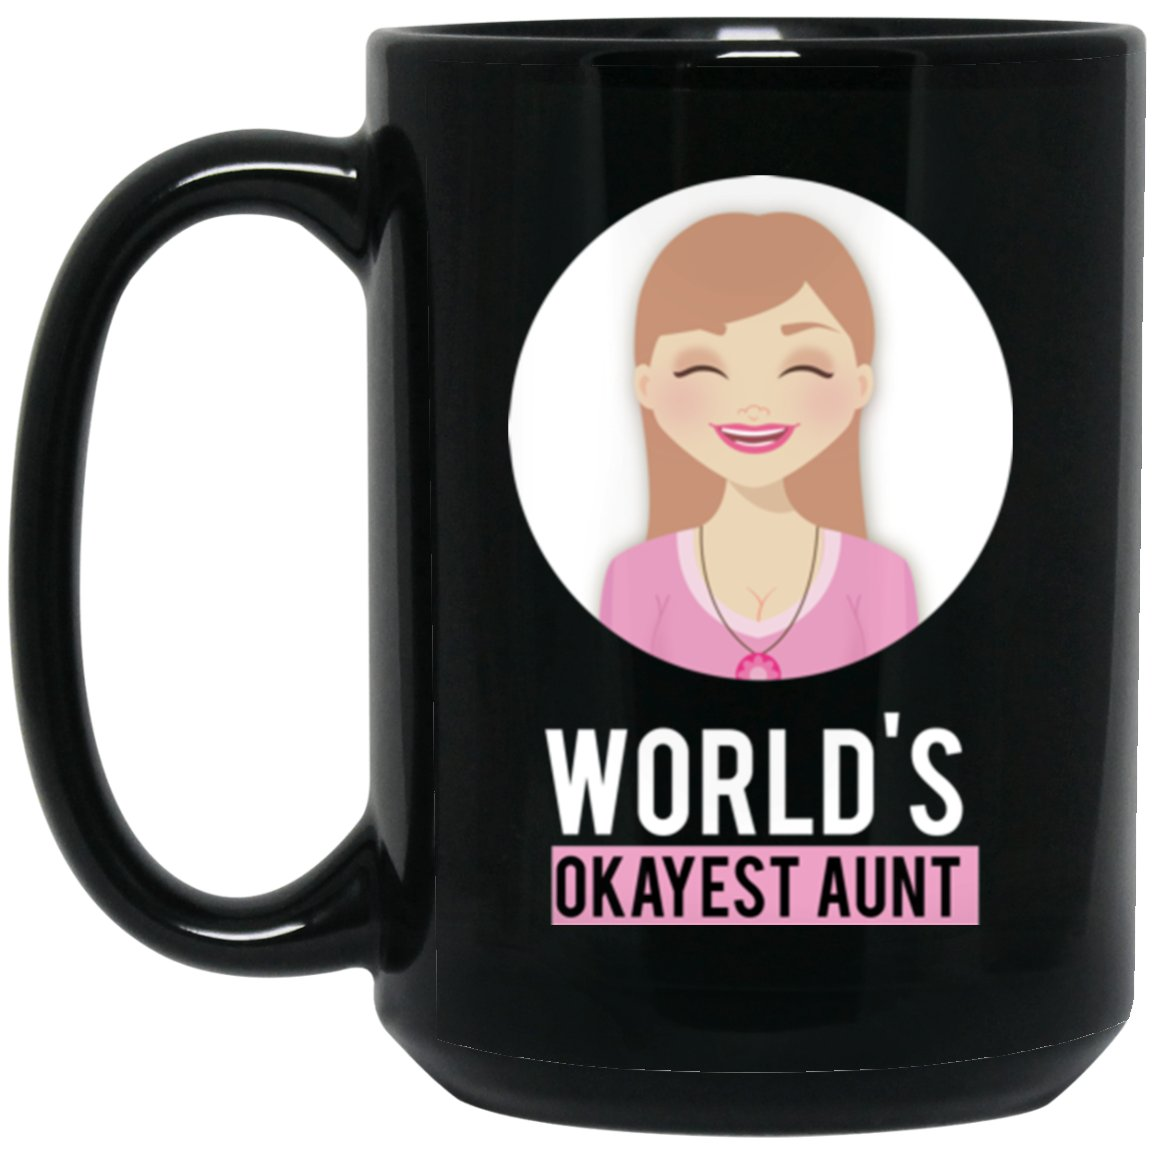 Funny Aunt Coffee Mug For Sisters Who Just Became an Aunt Large Black Mug